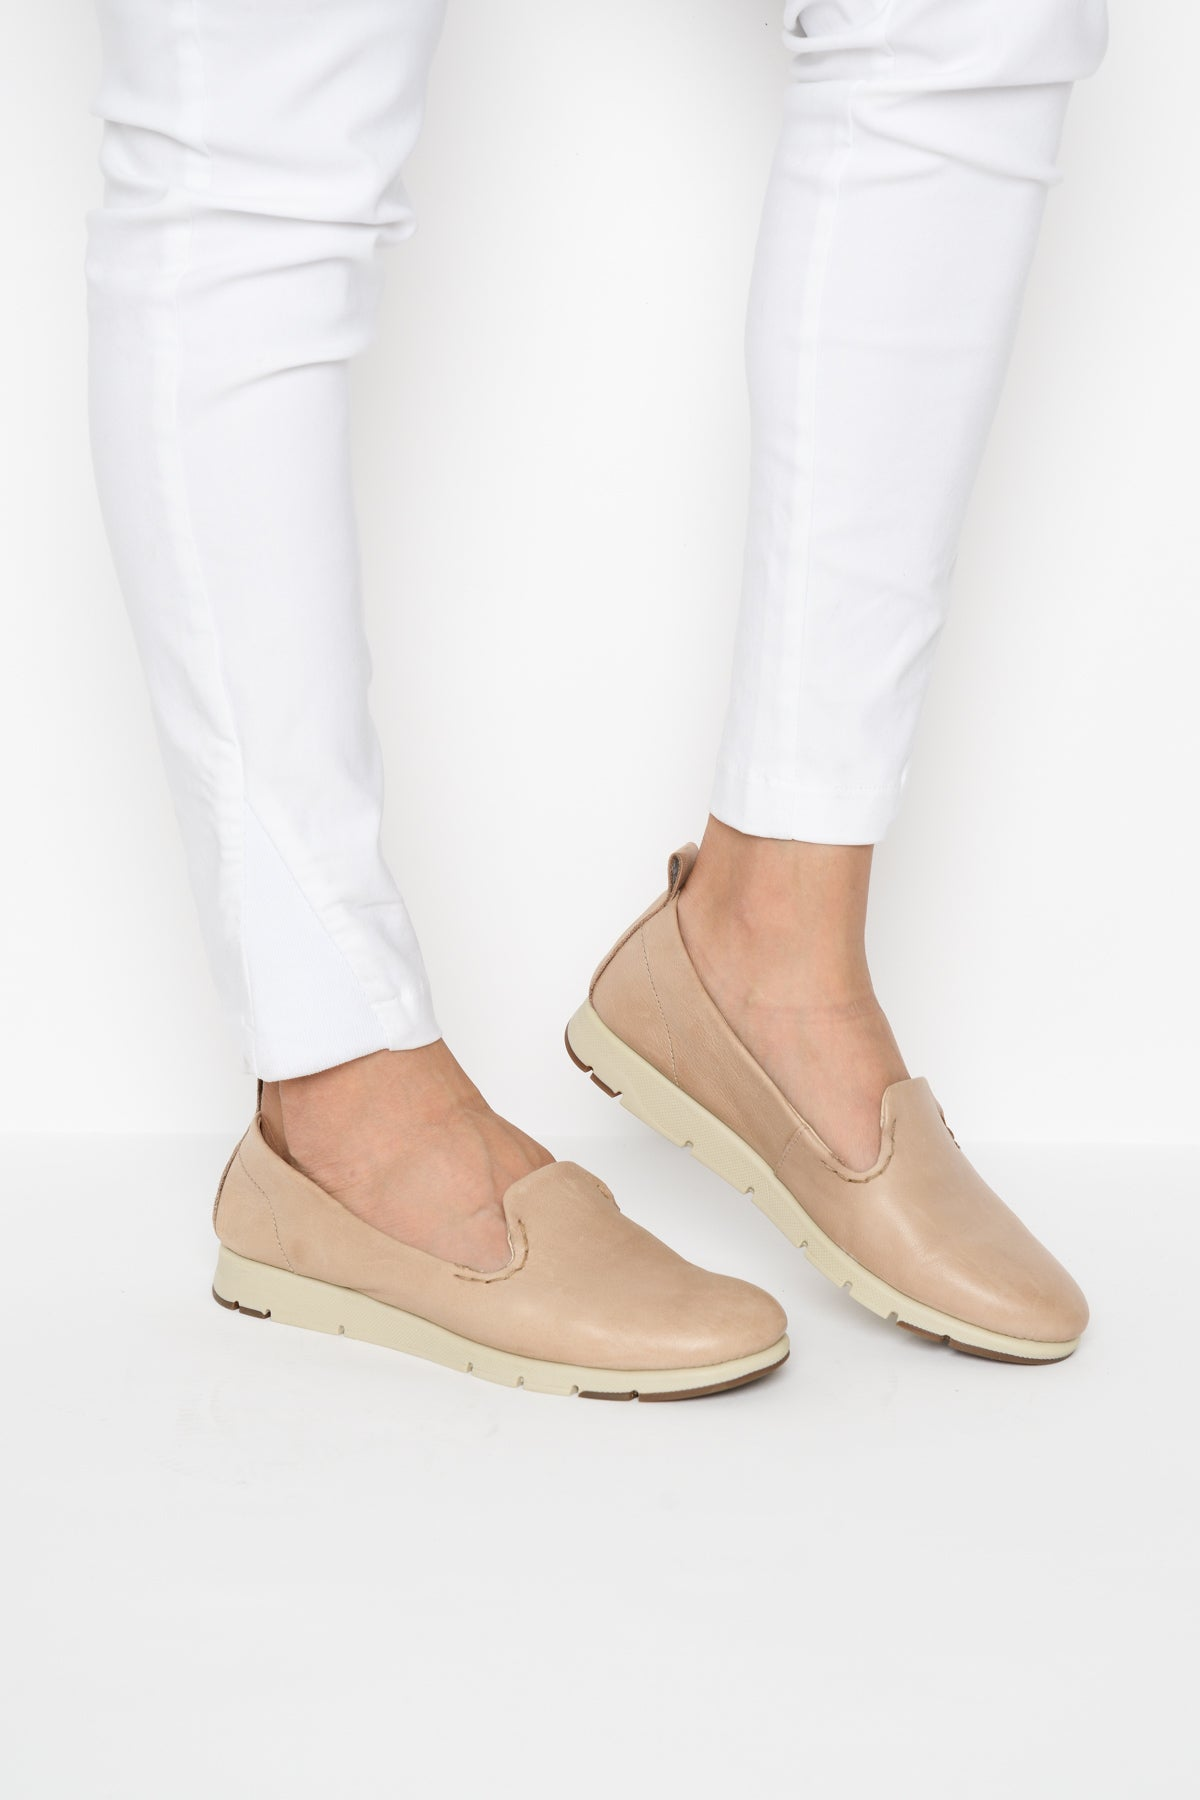 Aria Nude Leather Shoe - Blue Bungalow